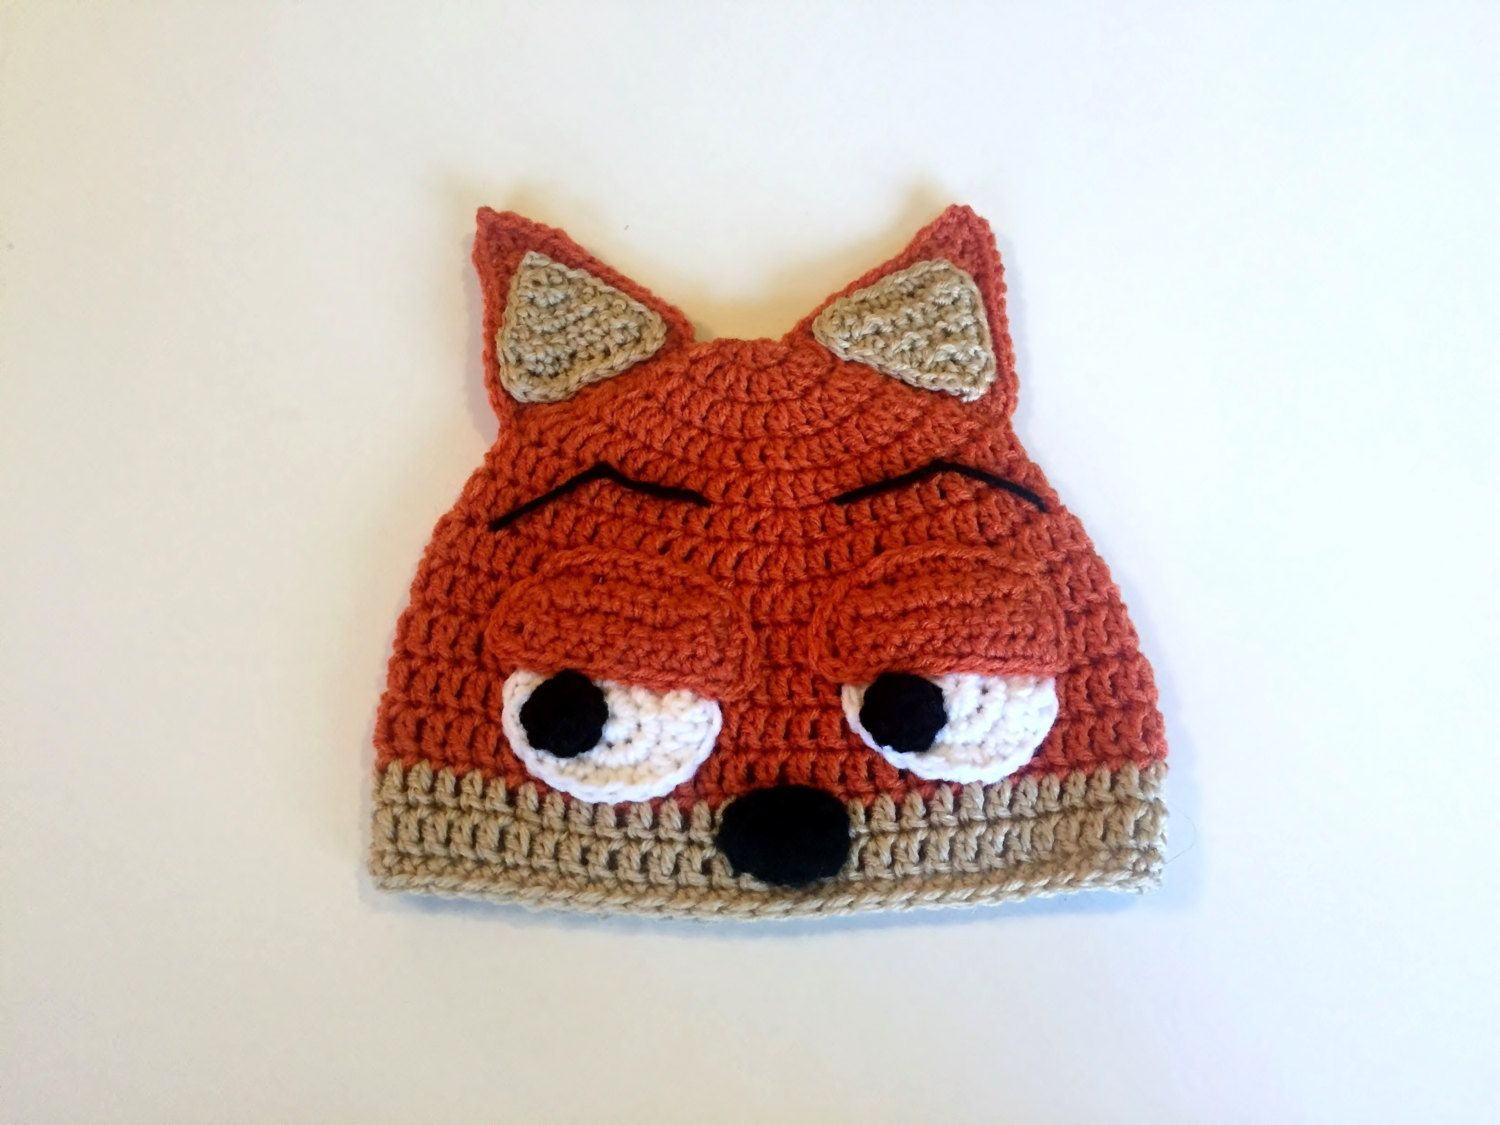 Zootopia nick wilde hat crochet nick wilde beanie halloween zootopia nick wilde hat crochet nick wilde beanie halloween costume zootopia disney movies sloth costume nick bankloansurffo Image collections